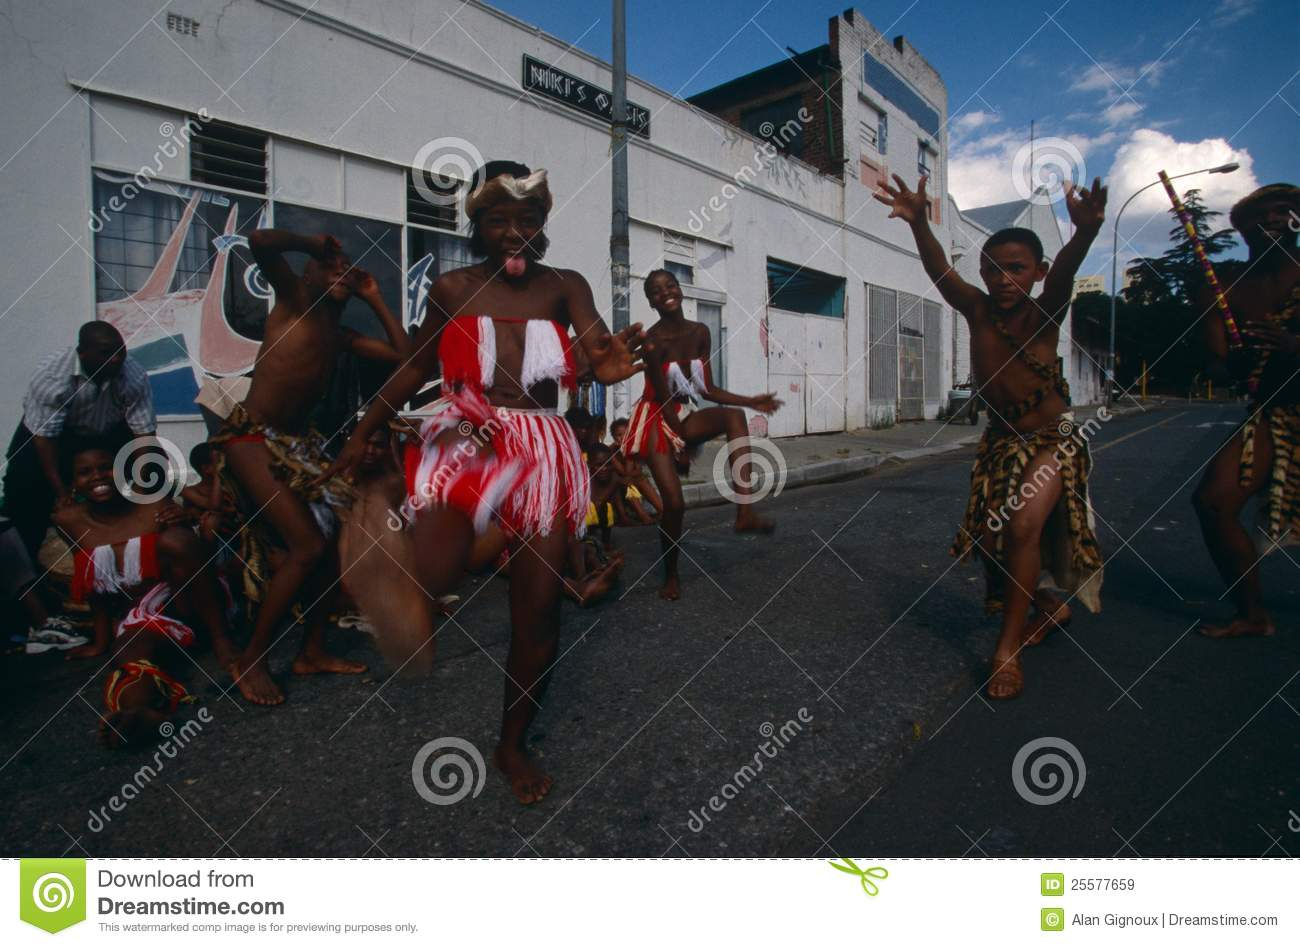 An ethnic tribe performing in Johannesburg.